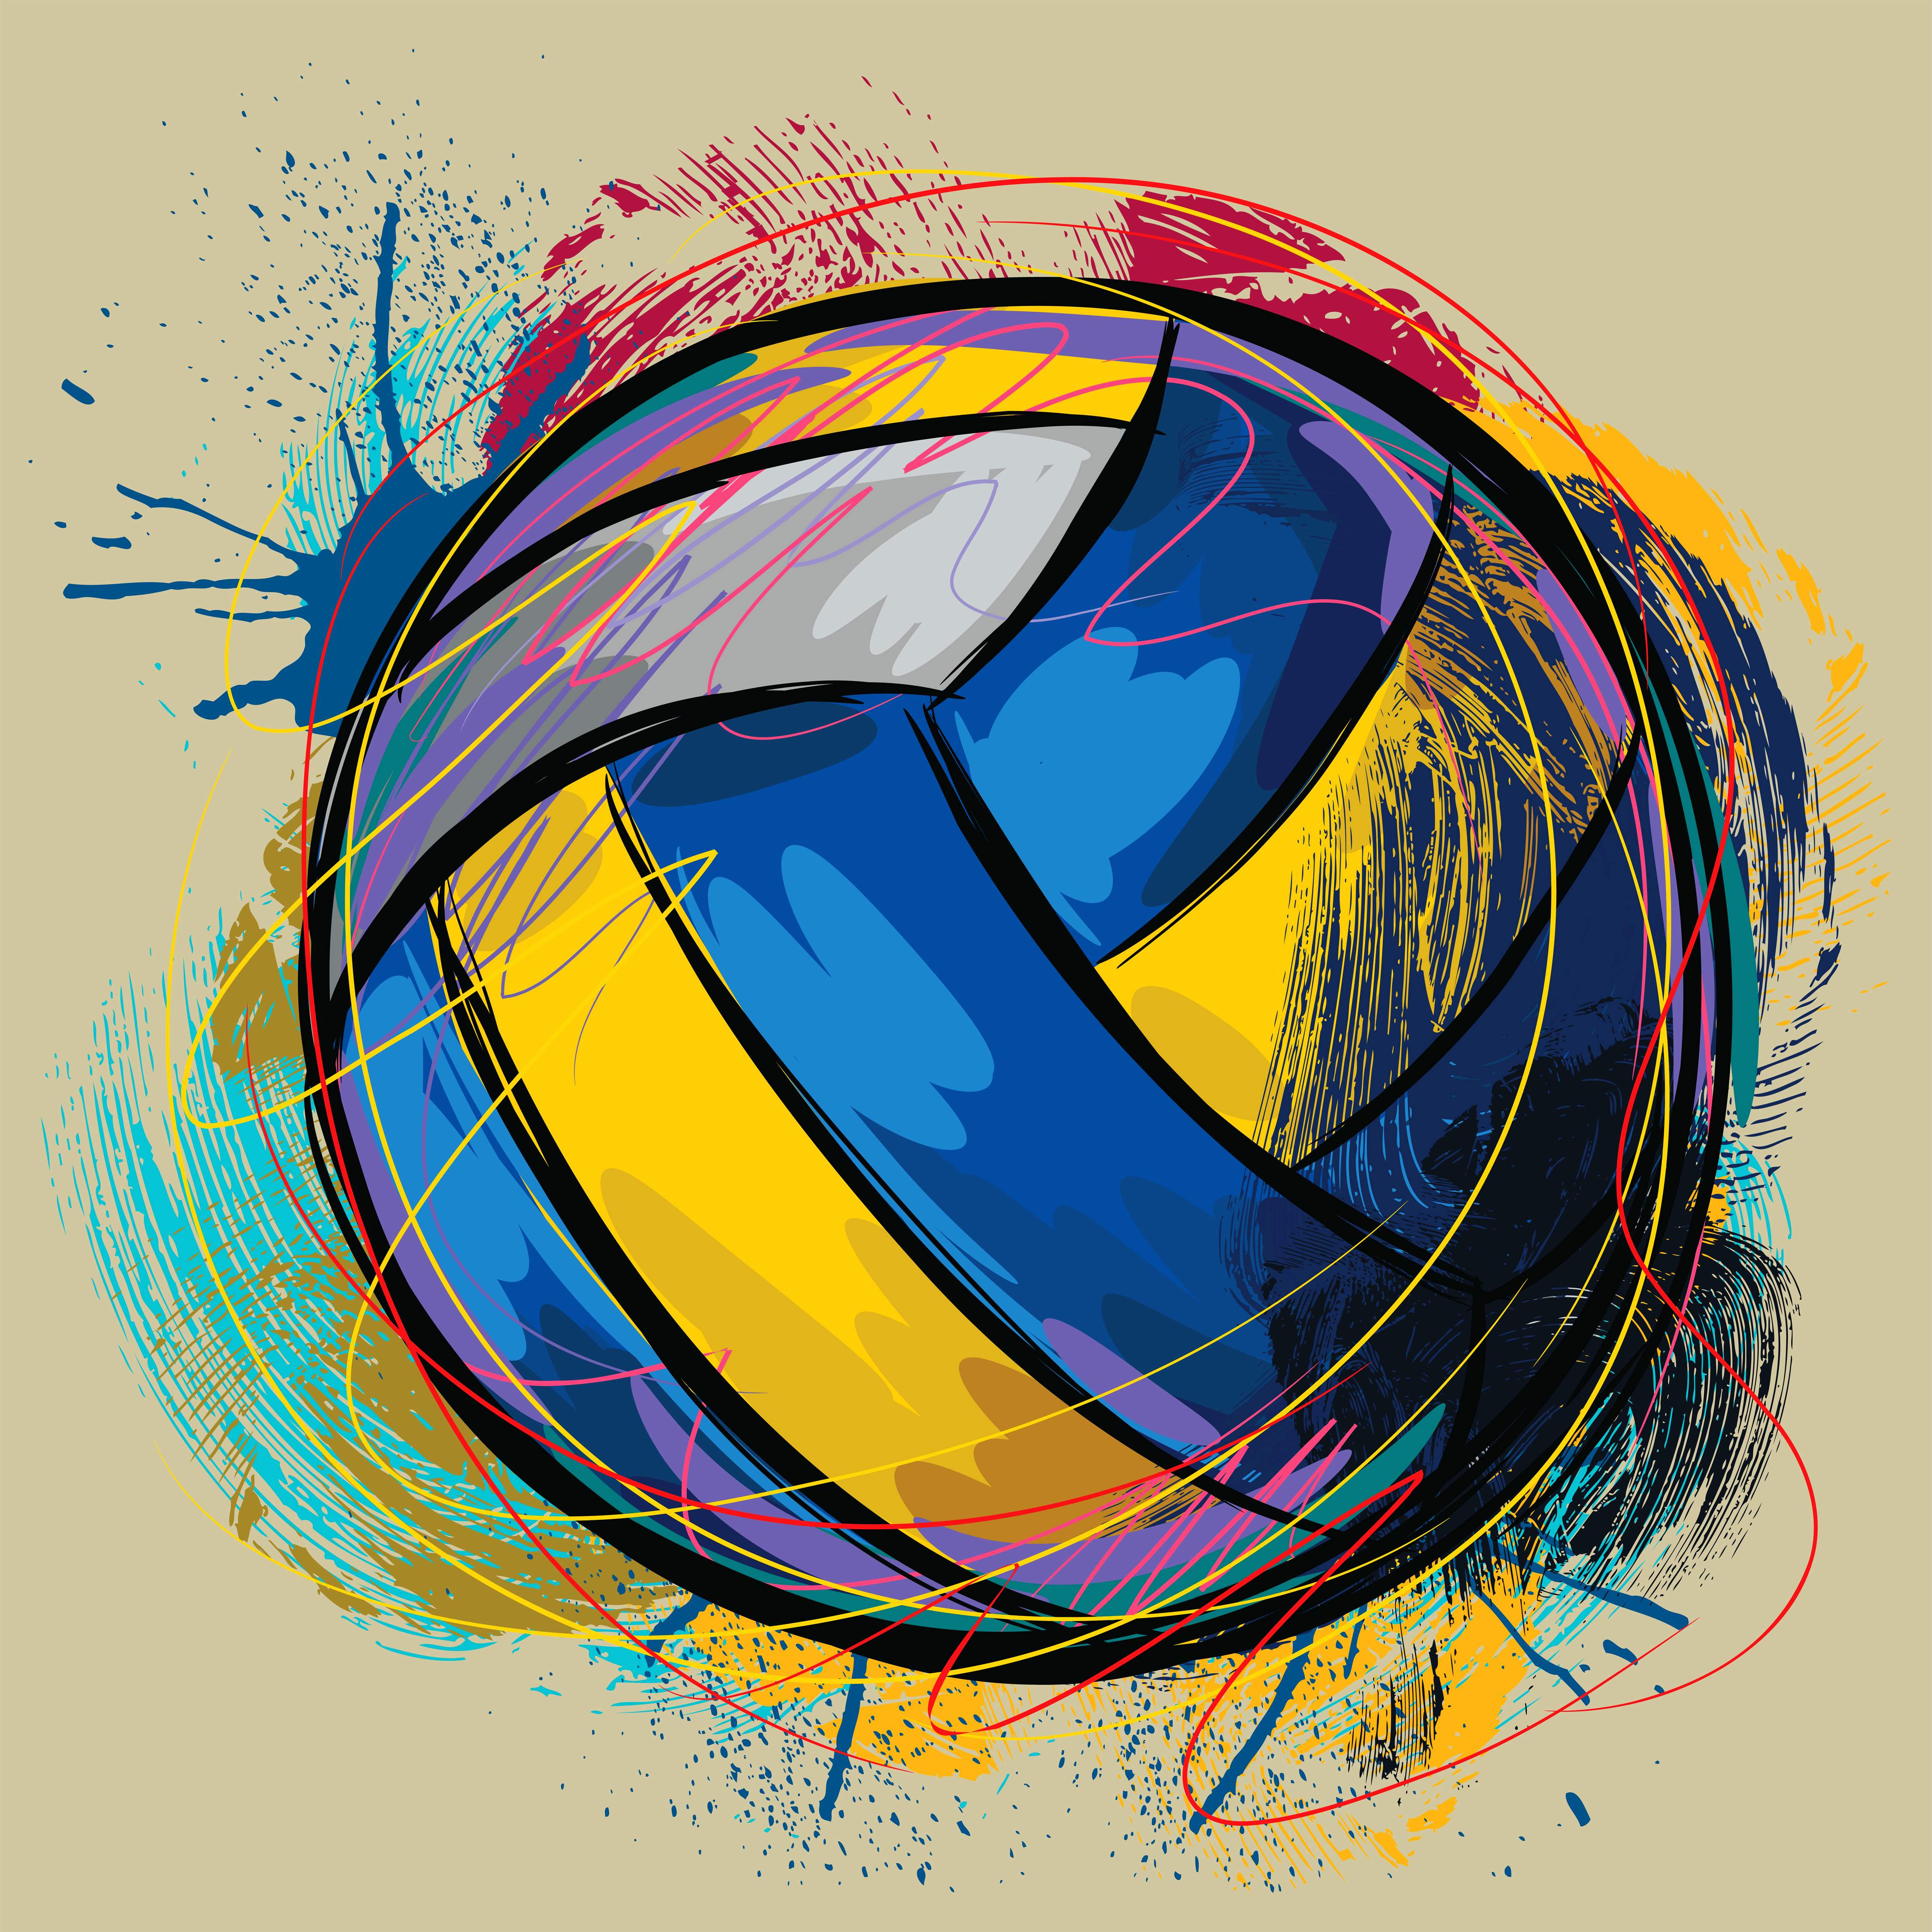 VolleyBall Wallpaper - HD Wallpapers Backgrounds of Your Choice